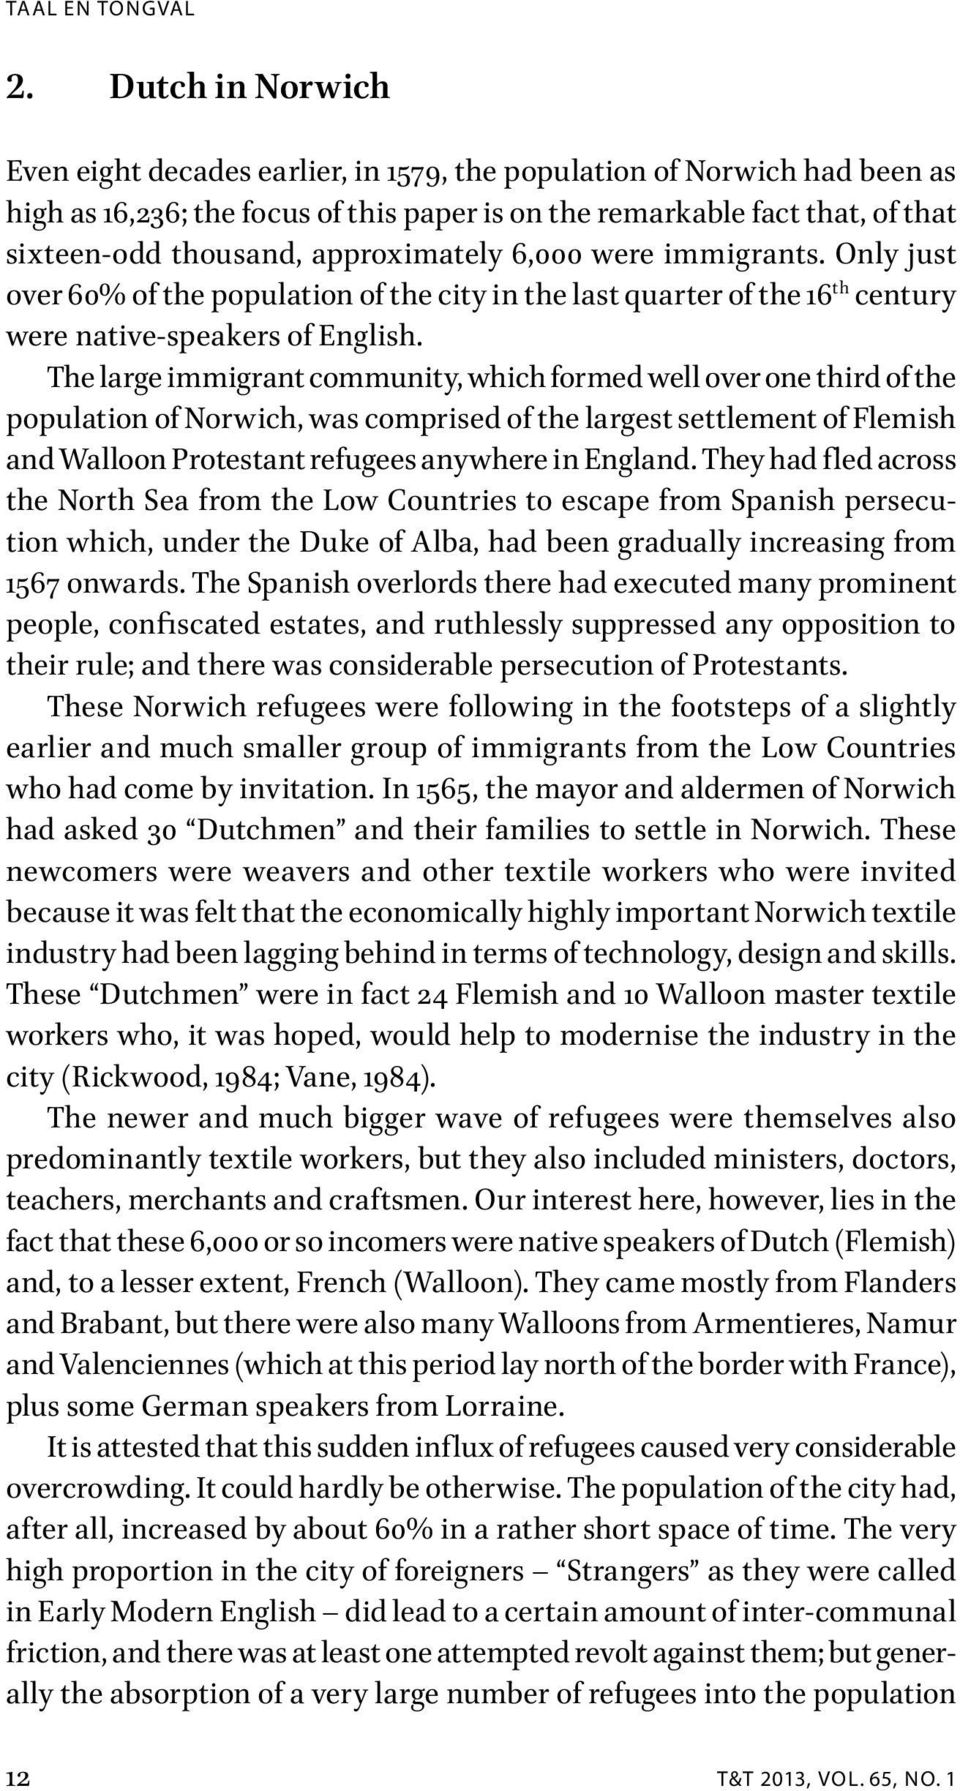 The large immigrant community, which formed well over one third of the population of Norwich, was comprised of the largest settlement of Flemish and Walloon Protestant refugees anywhere in England.